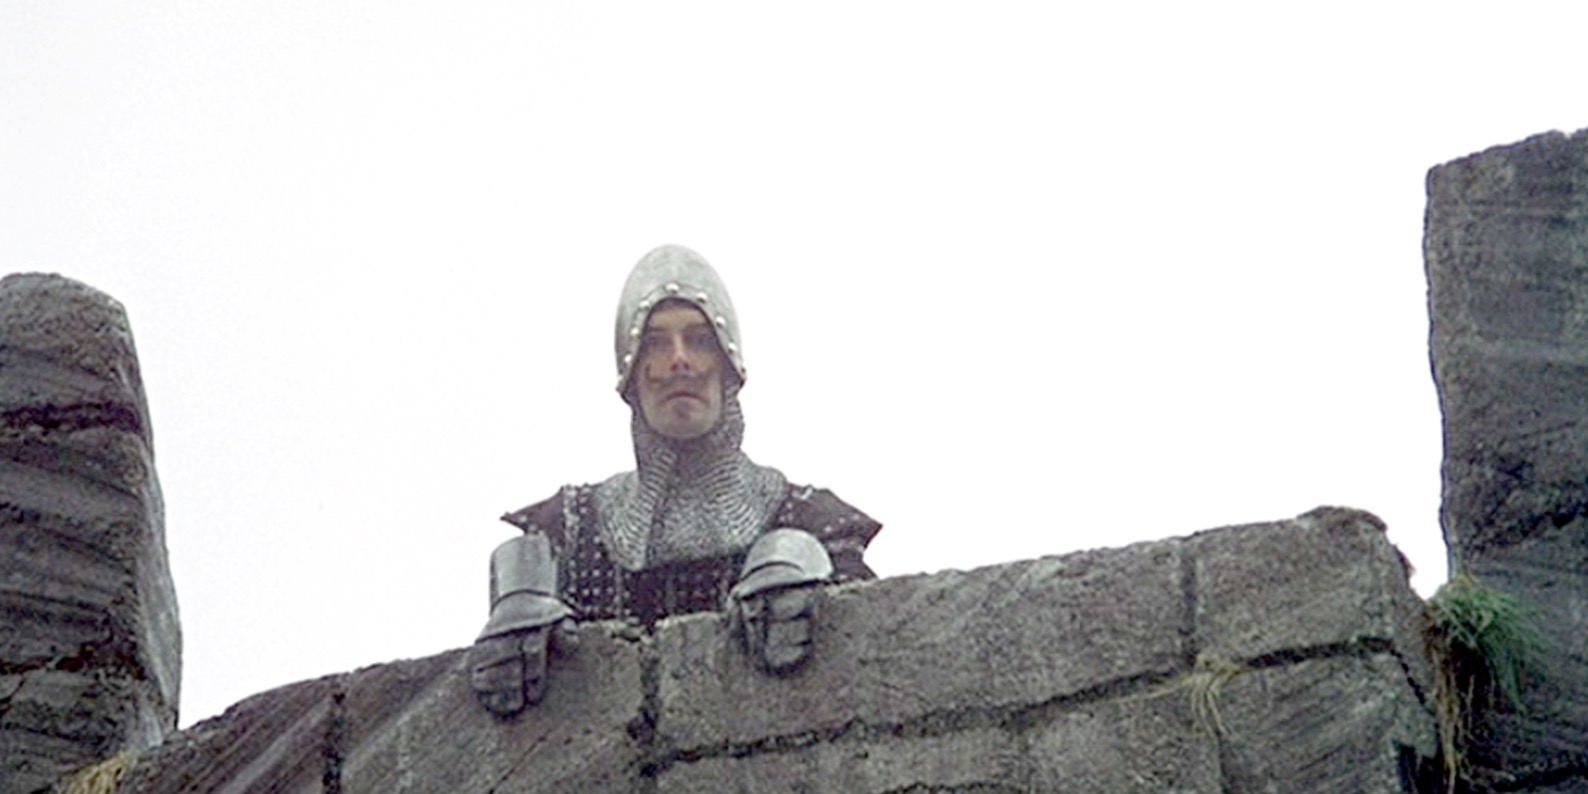 Monty Python and The Holy Grail, movies